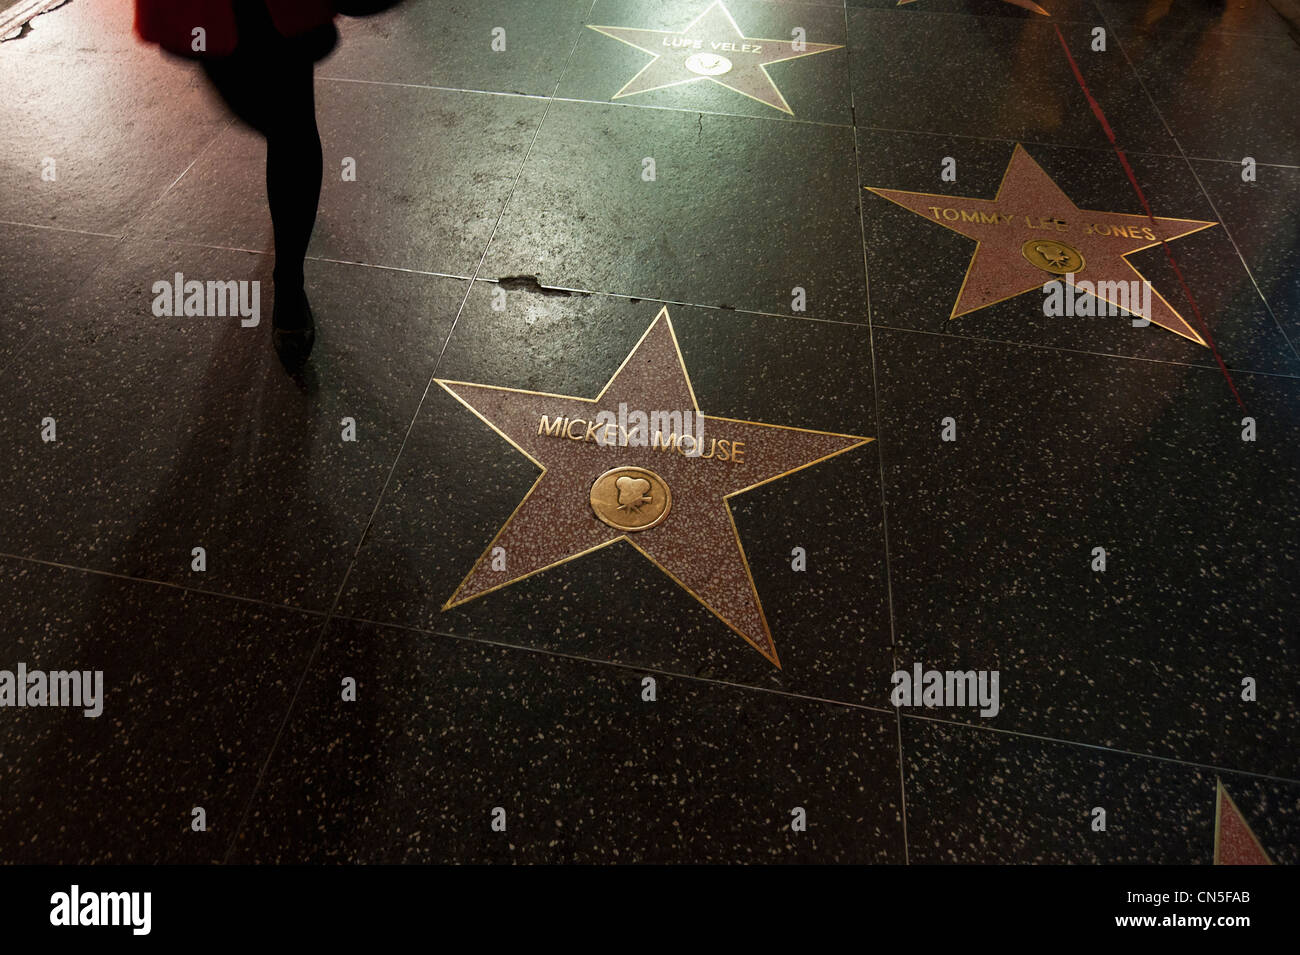 hollywood walk fame stockfotos hollywood walk fame bilder alamy. Black Bedroom Furniture Sets. Home Design Ideas